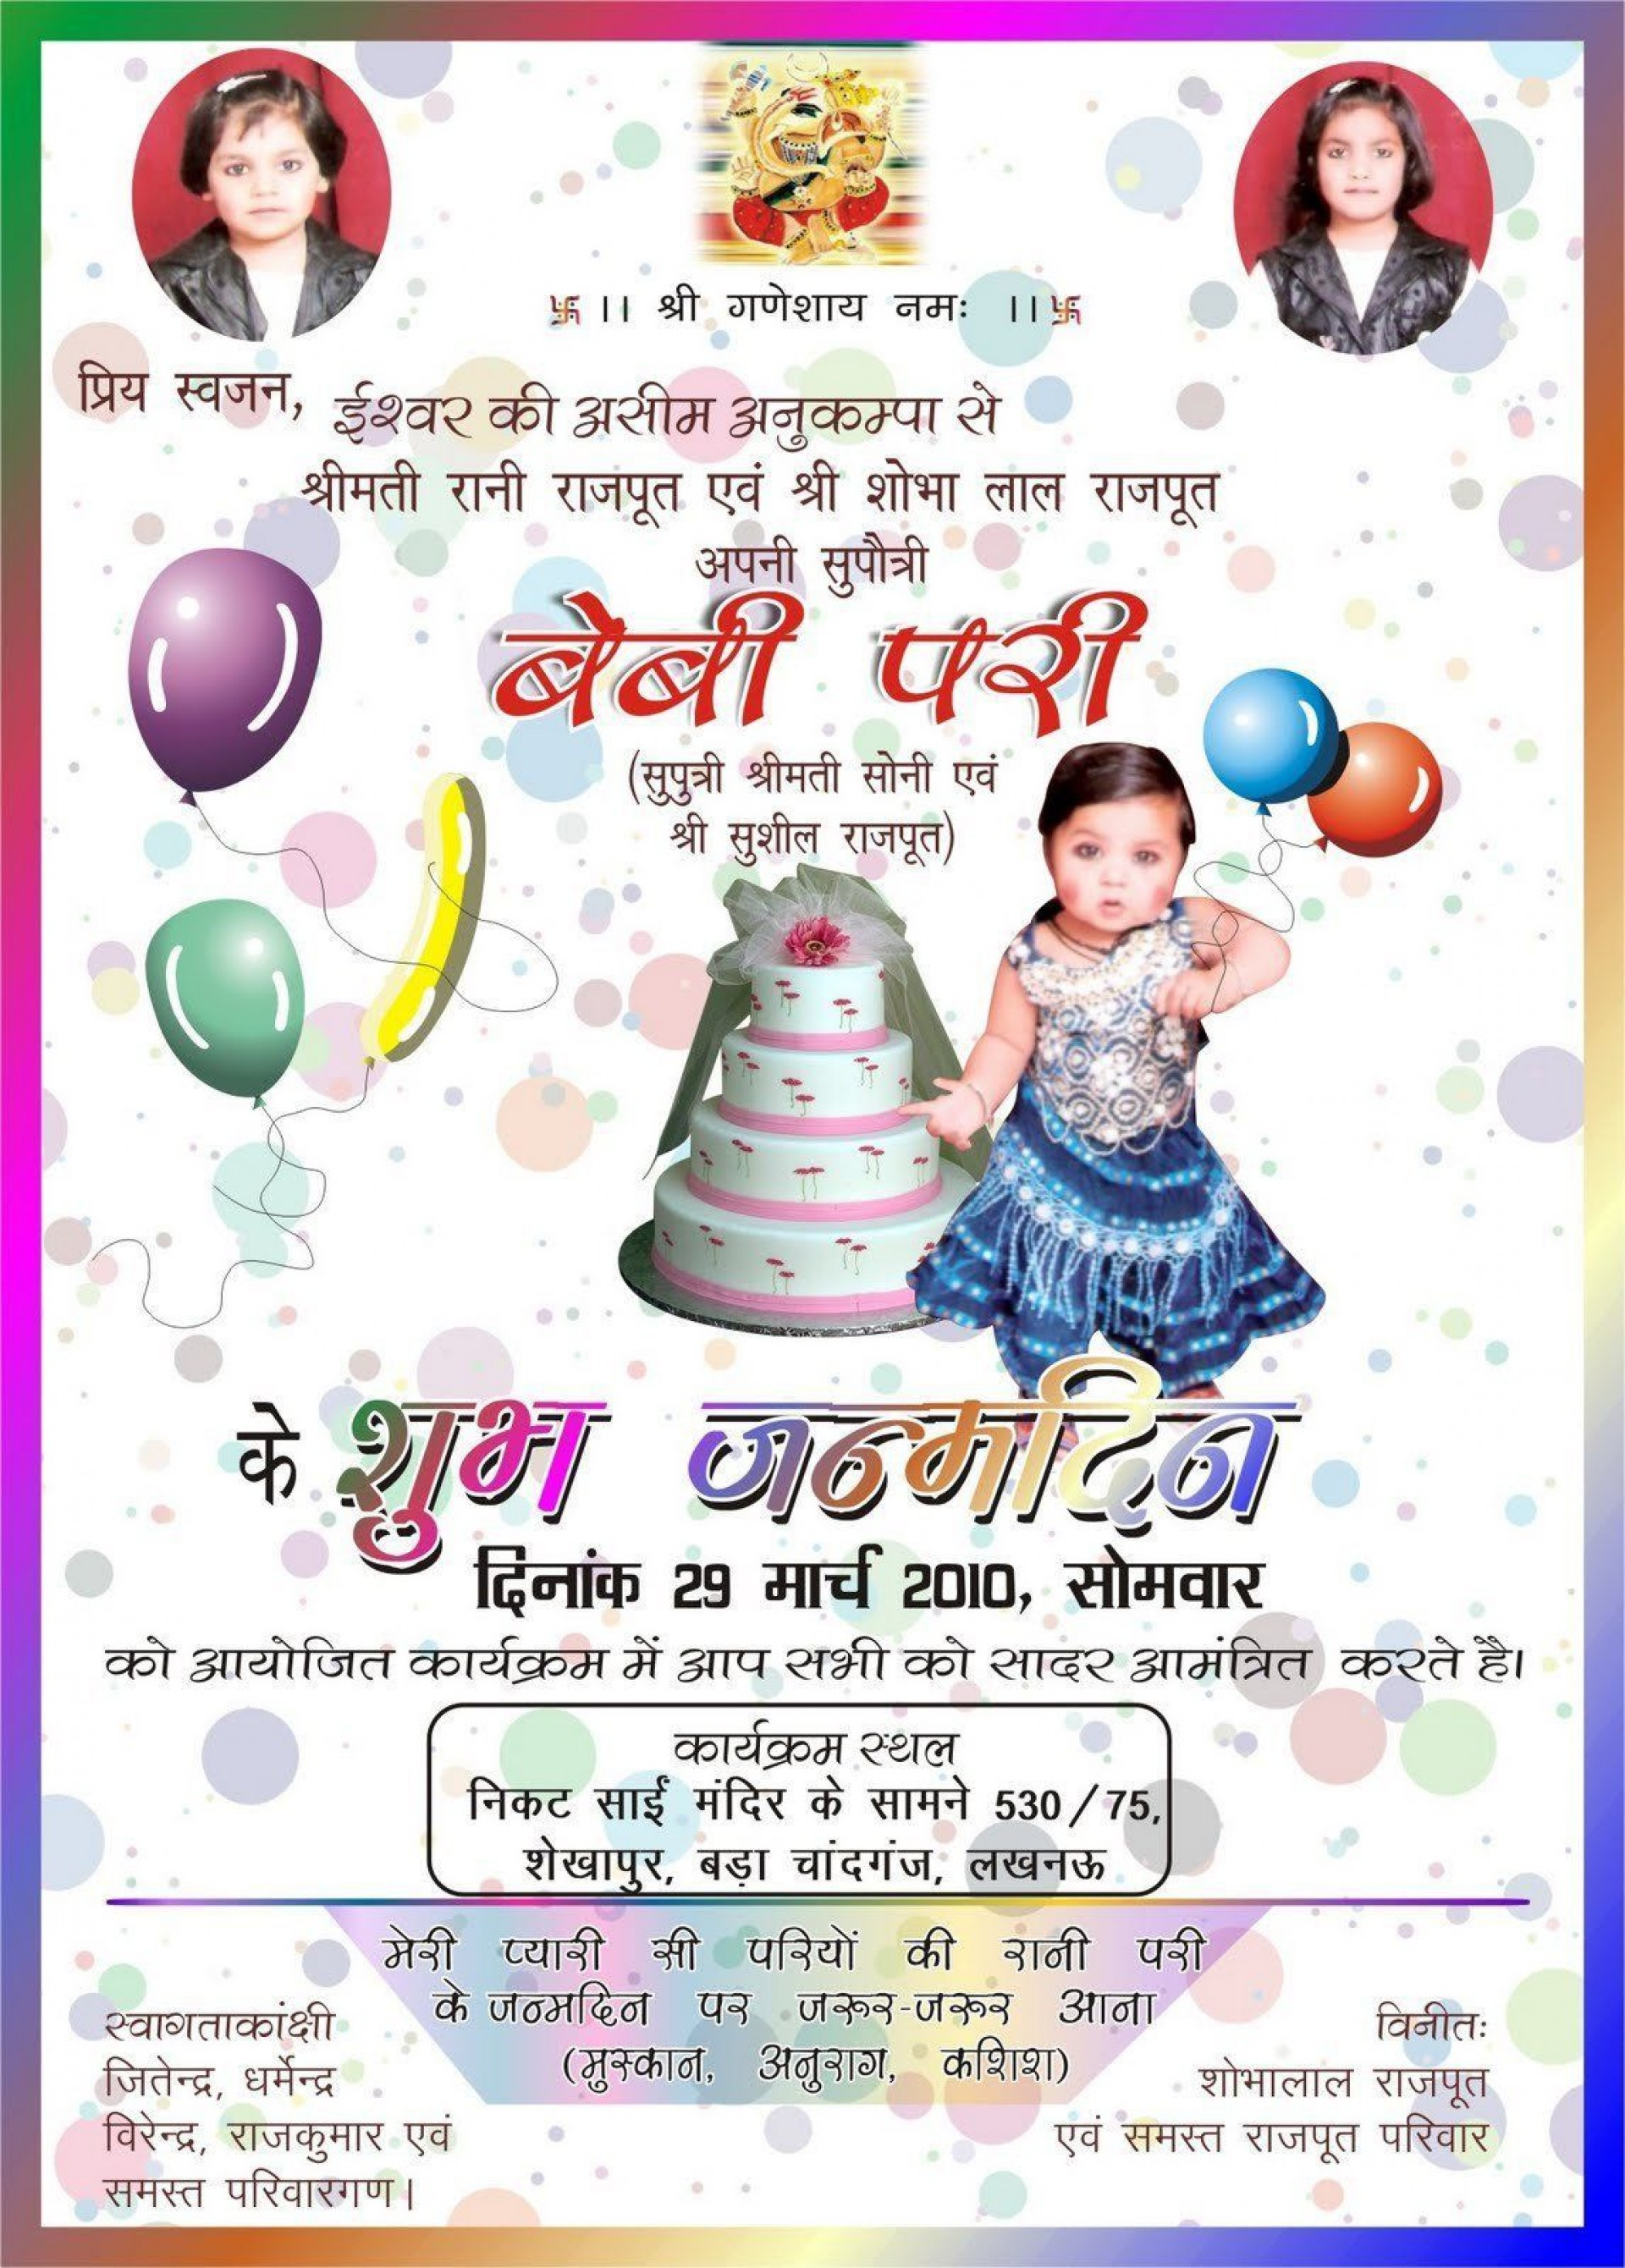 006 Astounding Free Online Birthday Invitation Card Maker With Name And Photo High Definition 1920